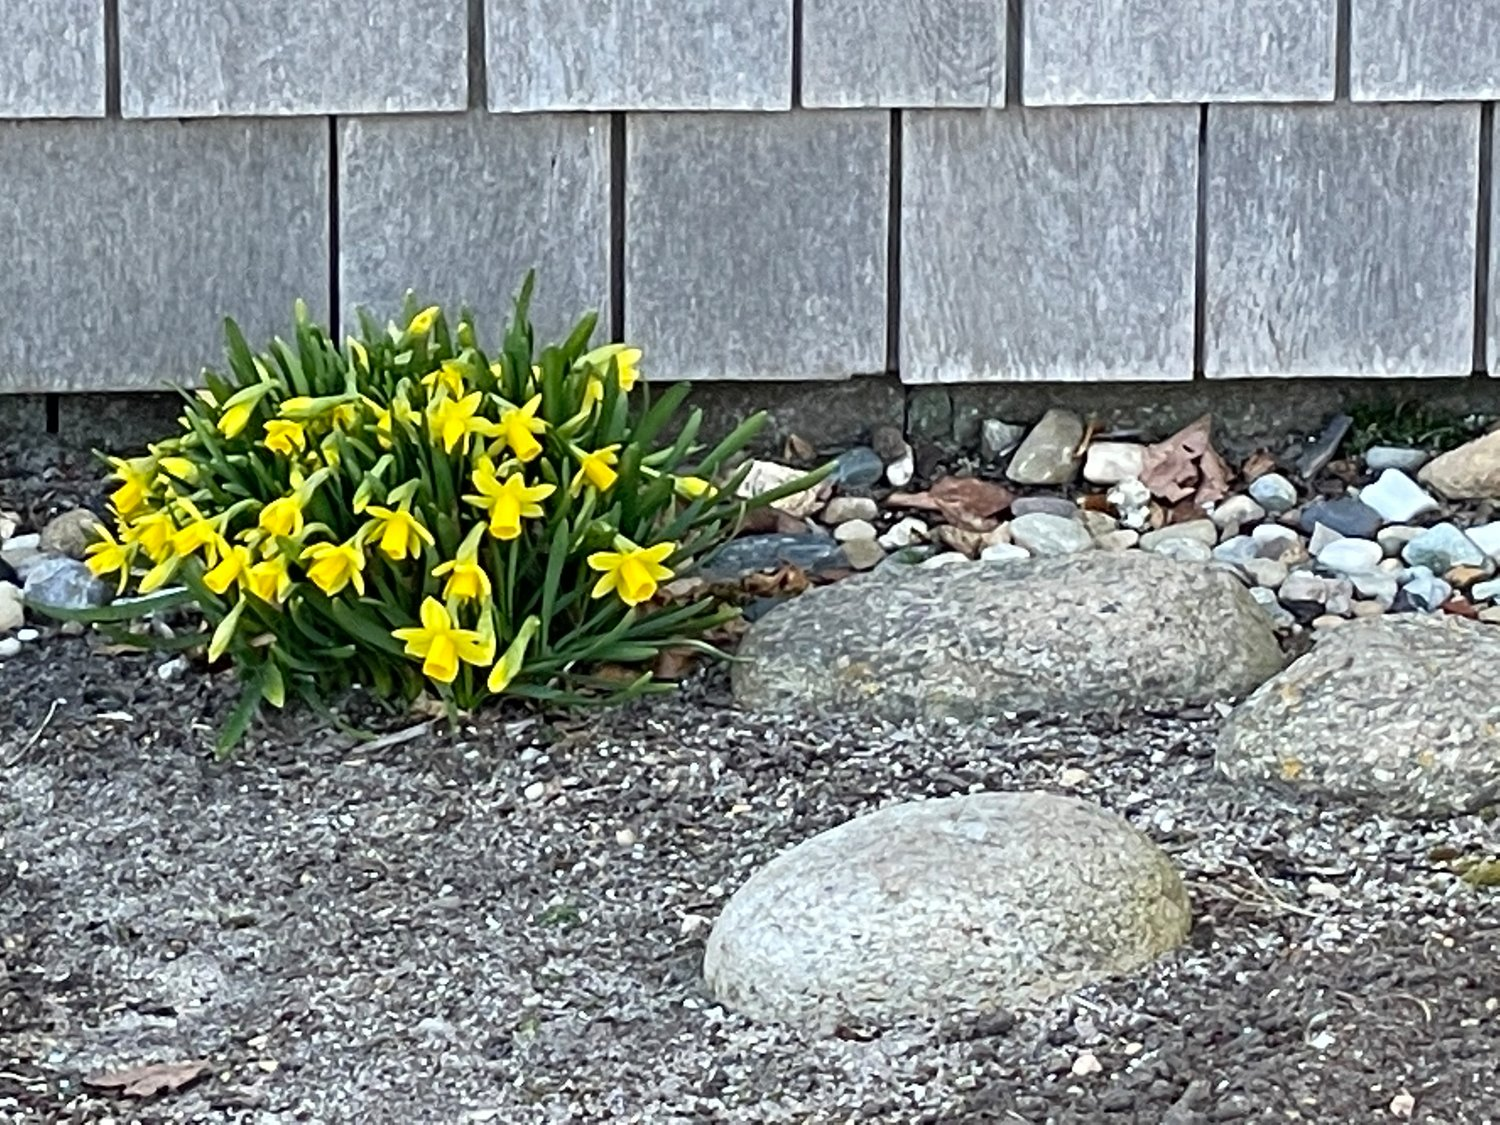 Daffodils seek the sun outside a Sconset home.